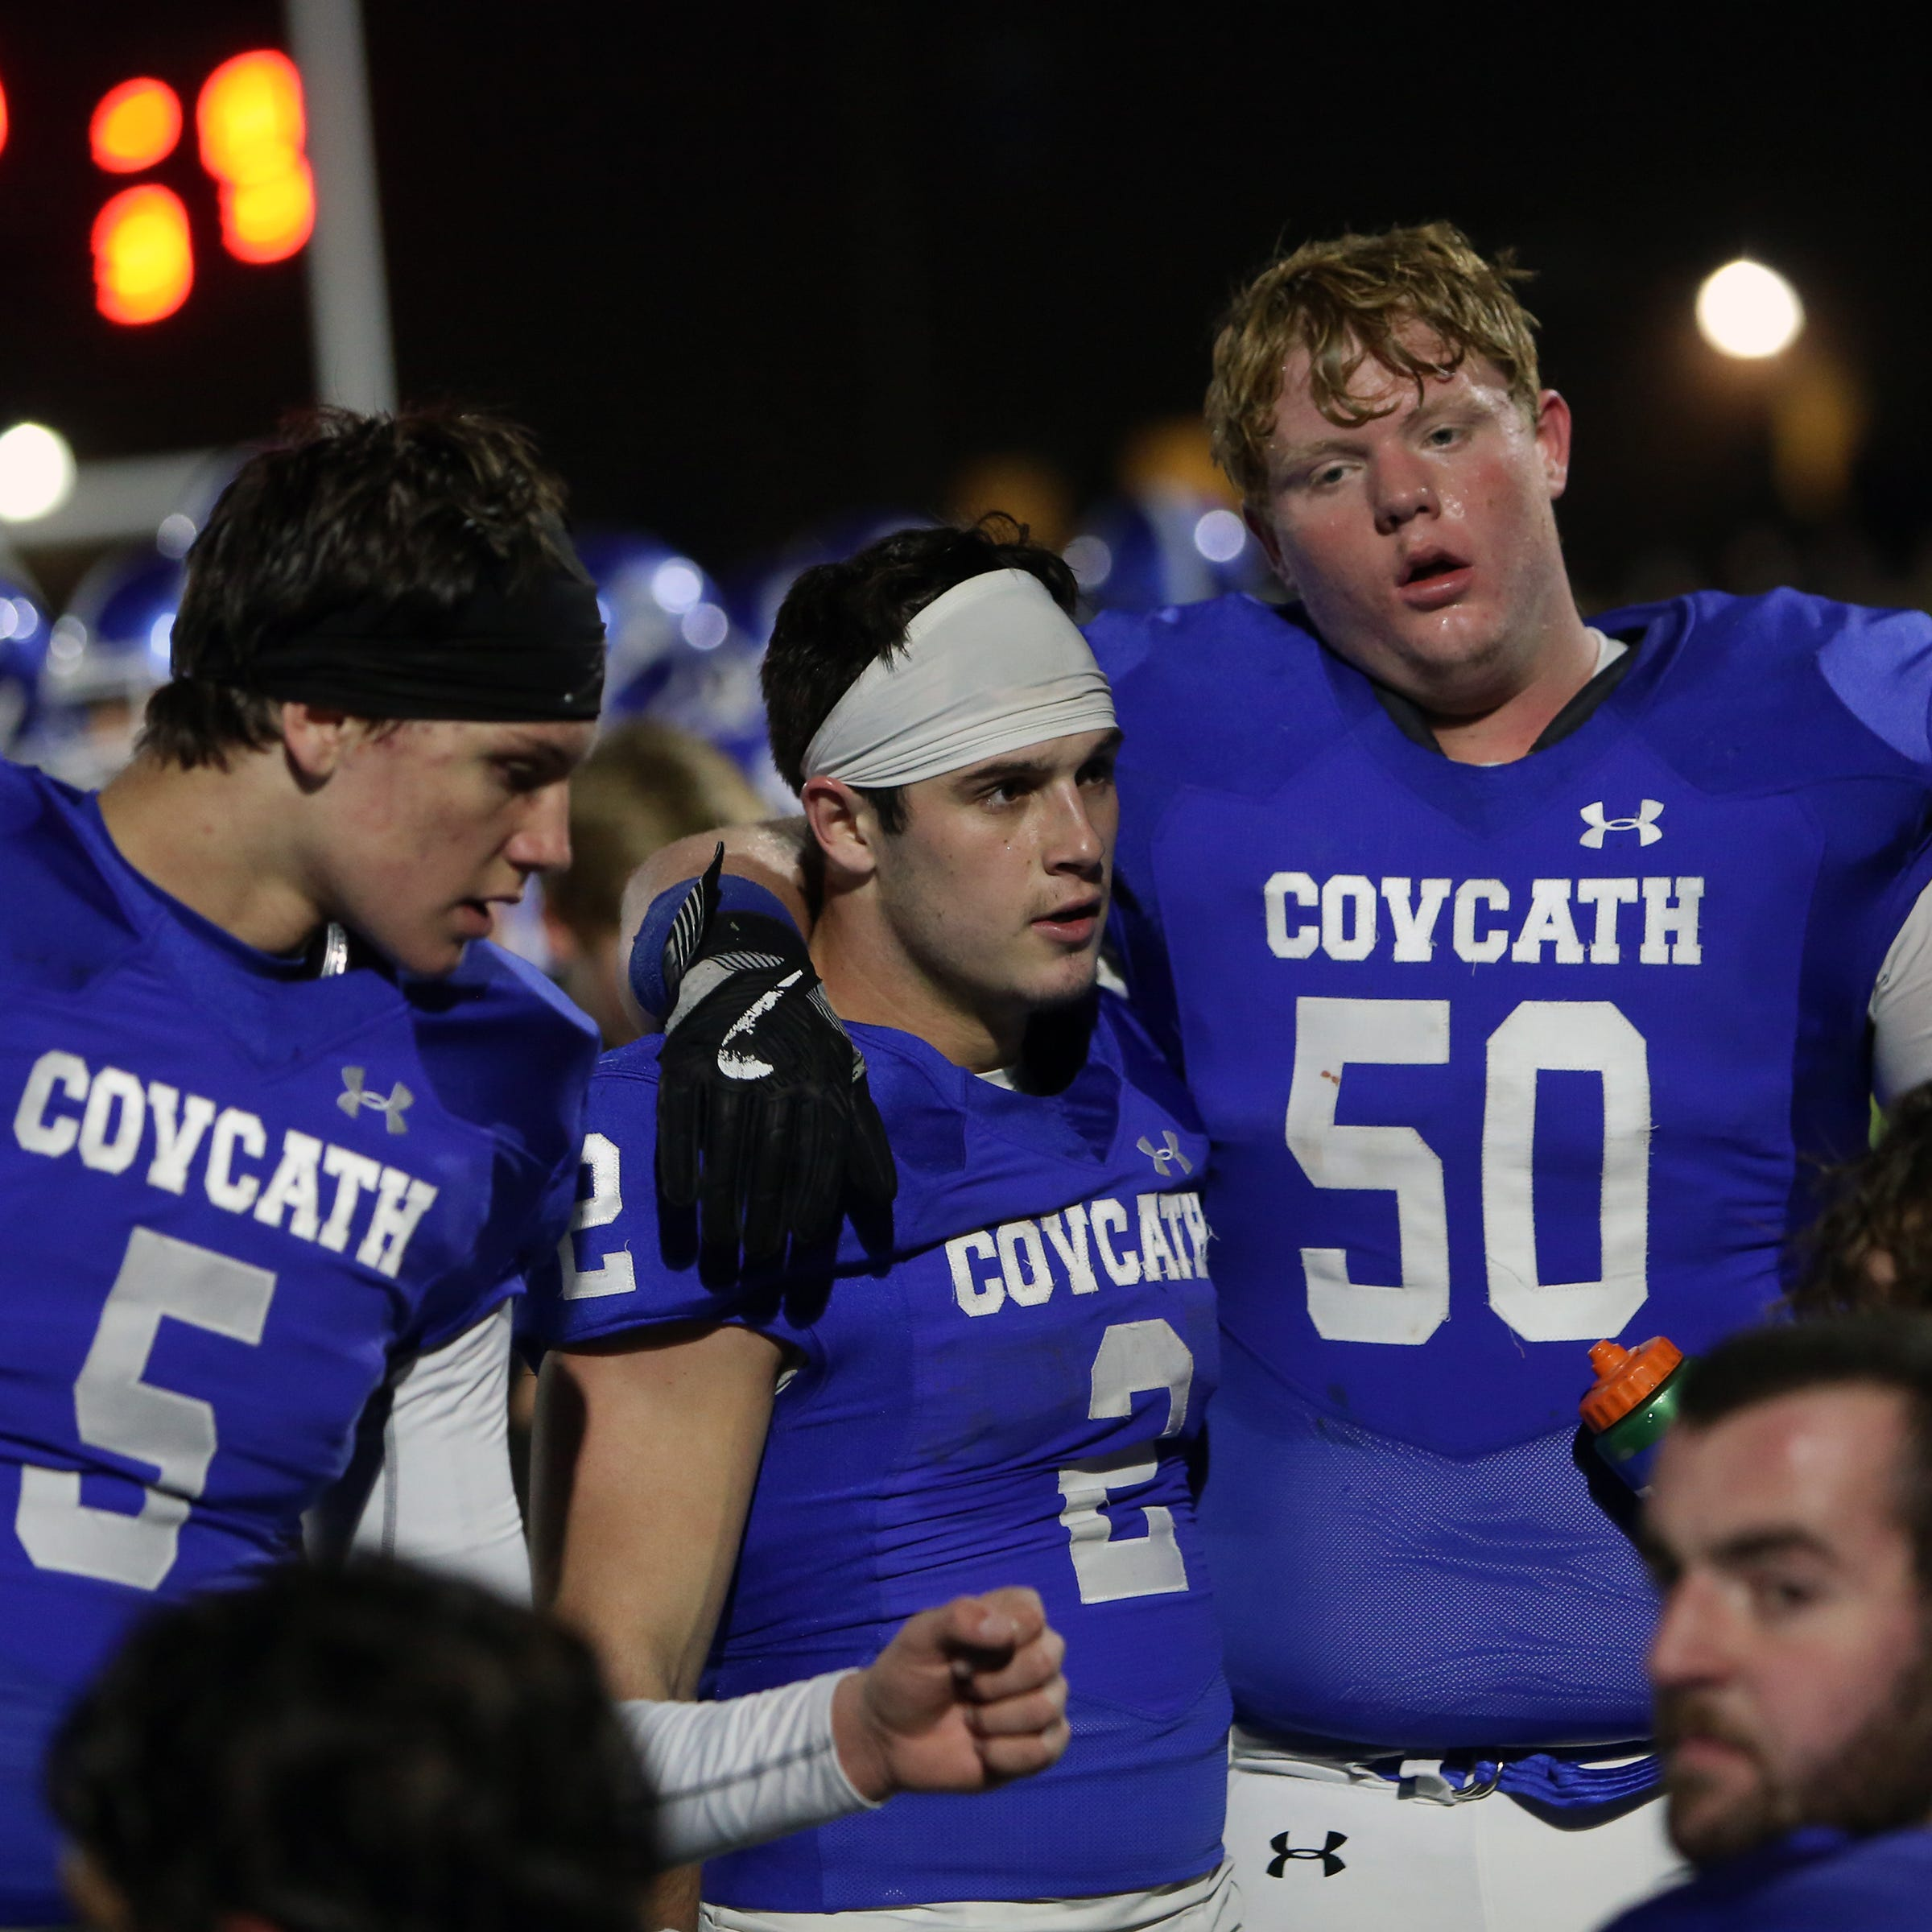 Covington Catholic running back Casey McGinness [2] quarterback Caleb Jacob [5] and center Carter Black meet on the sideline after a touchdown by McGinness. Covington Catholic defeated Highlands 36-0.